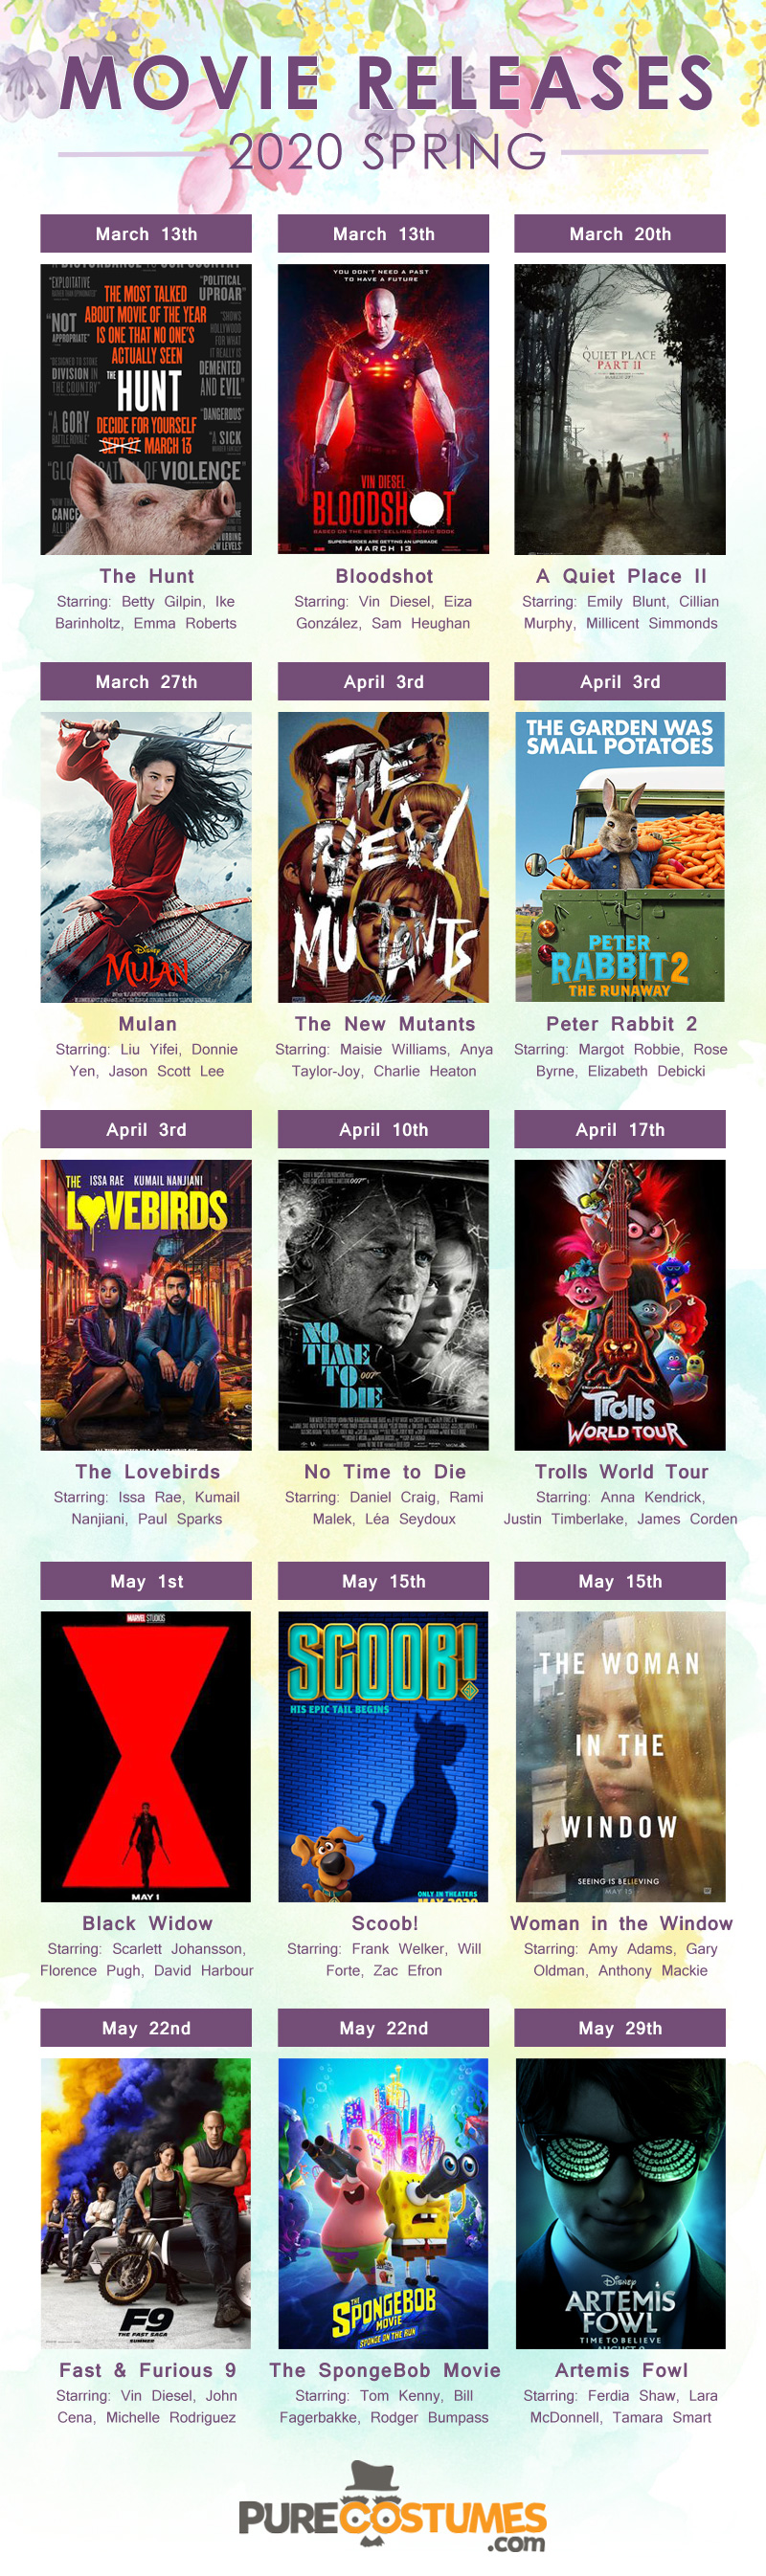 Spring 2020 Movie Releases Infographic